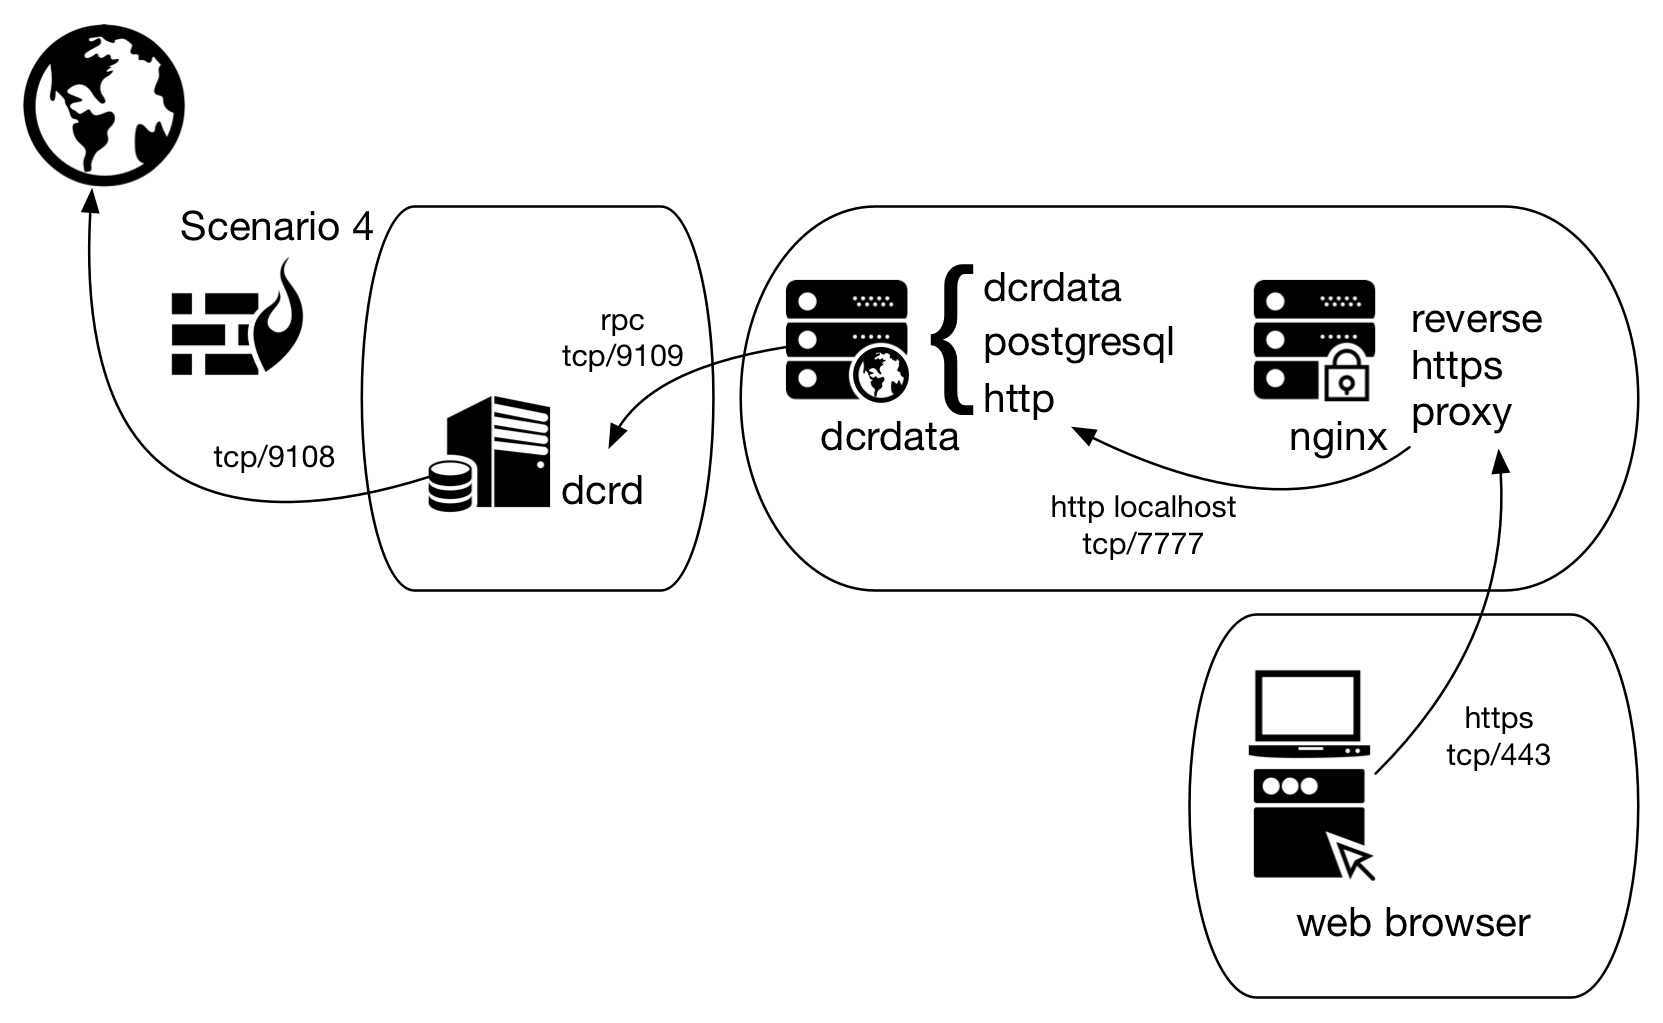 Figure 3 - Scenario 4 of dcrdata use, now via nginx